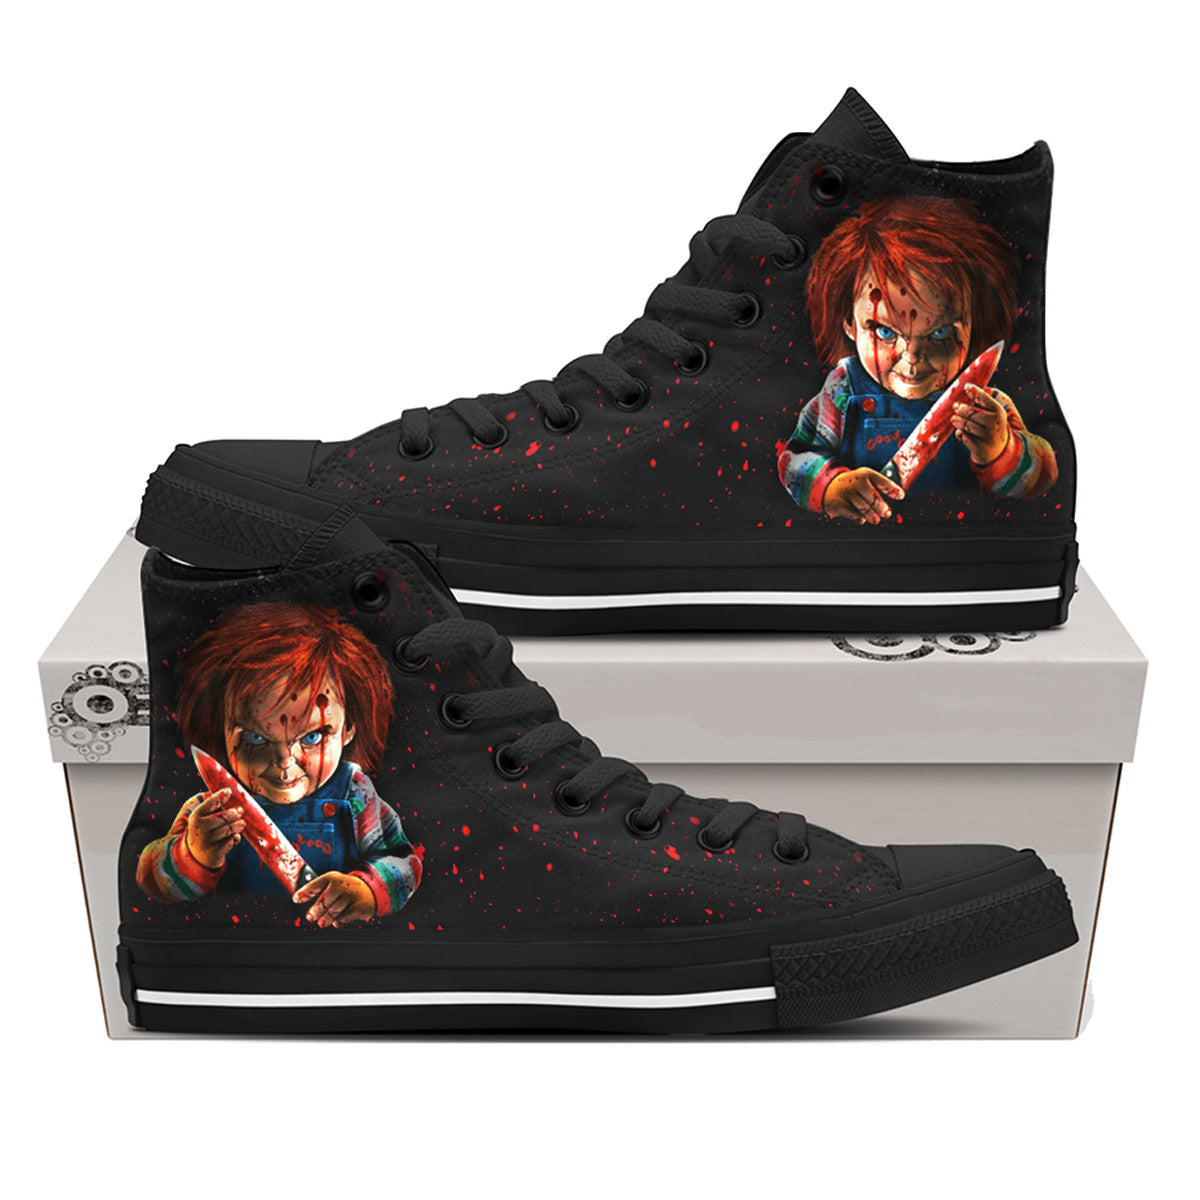 Chucky Bloody Shoes